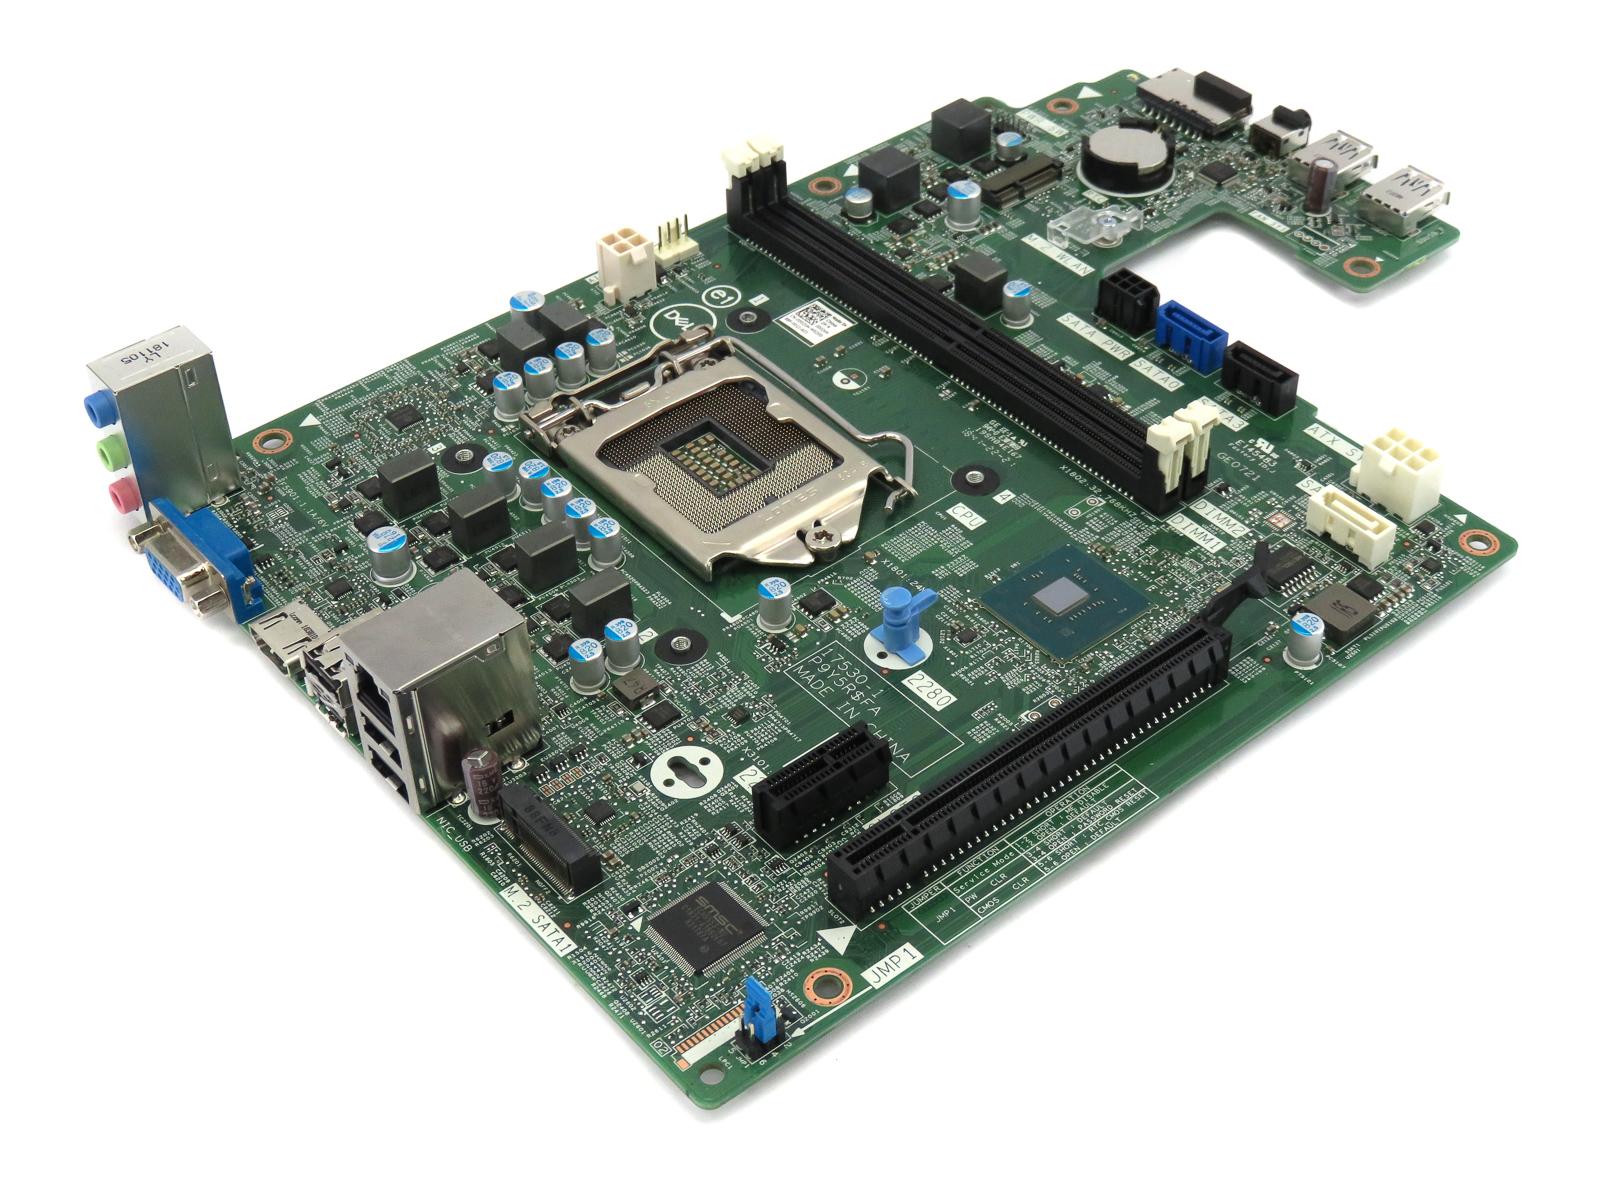 Dell Inspiron 3470 DDR4 Intel Socket LGA115x Desktop Motherboard - D02VH